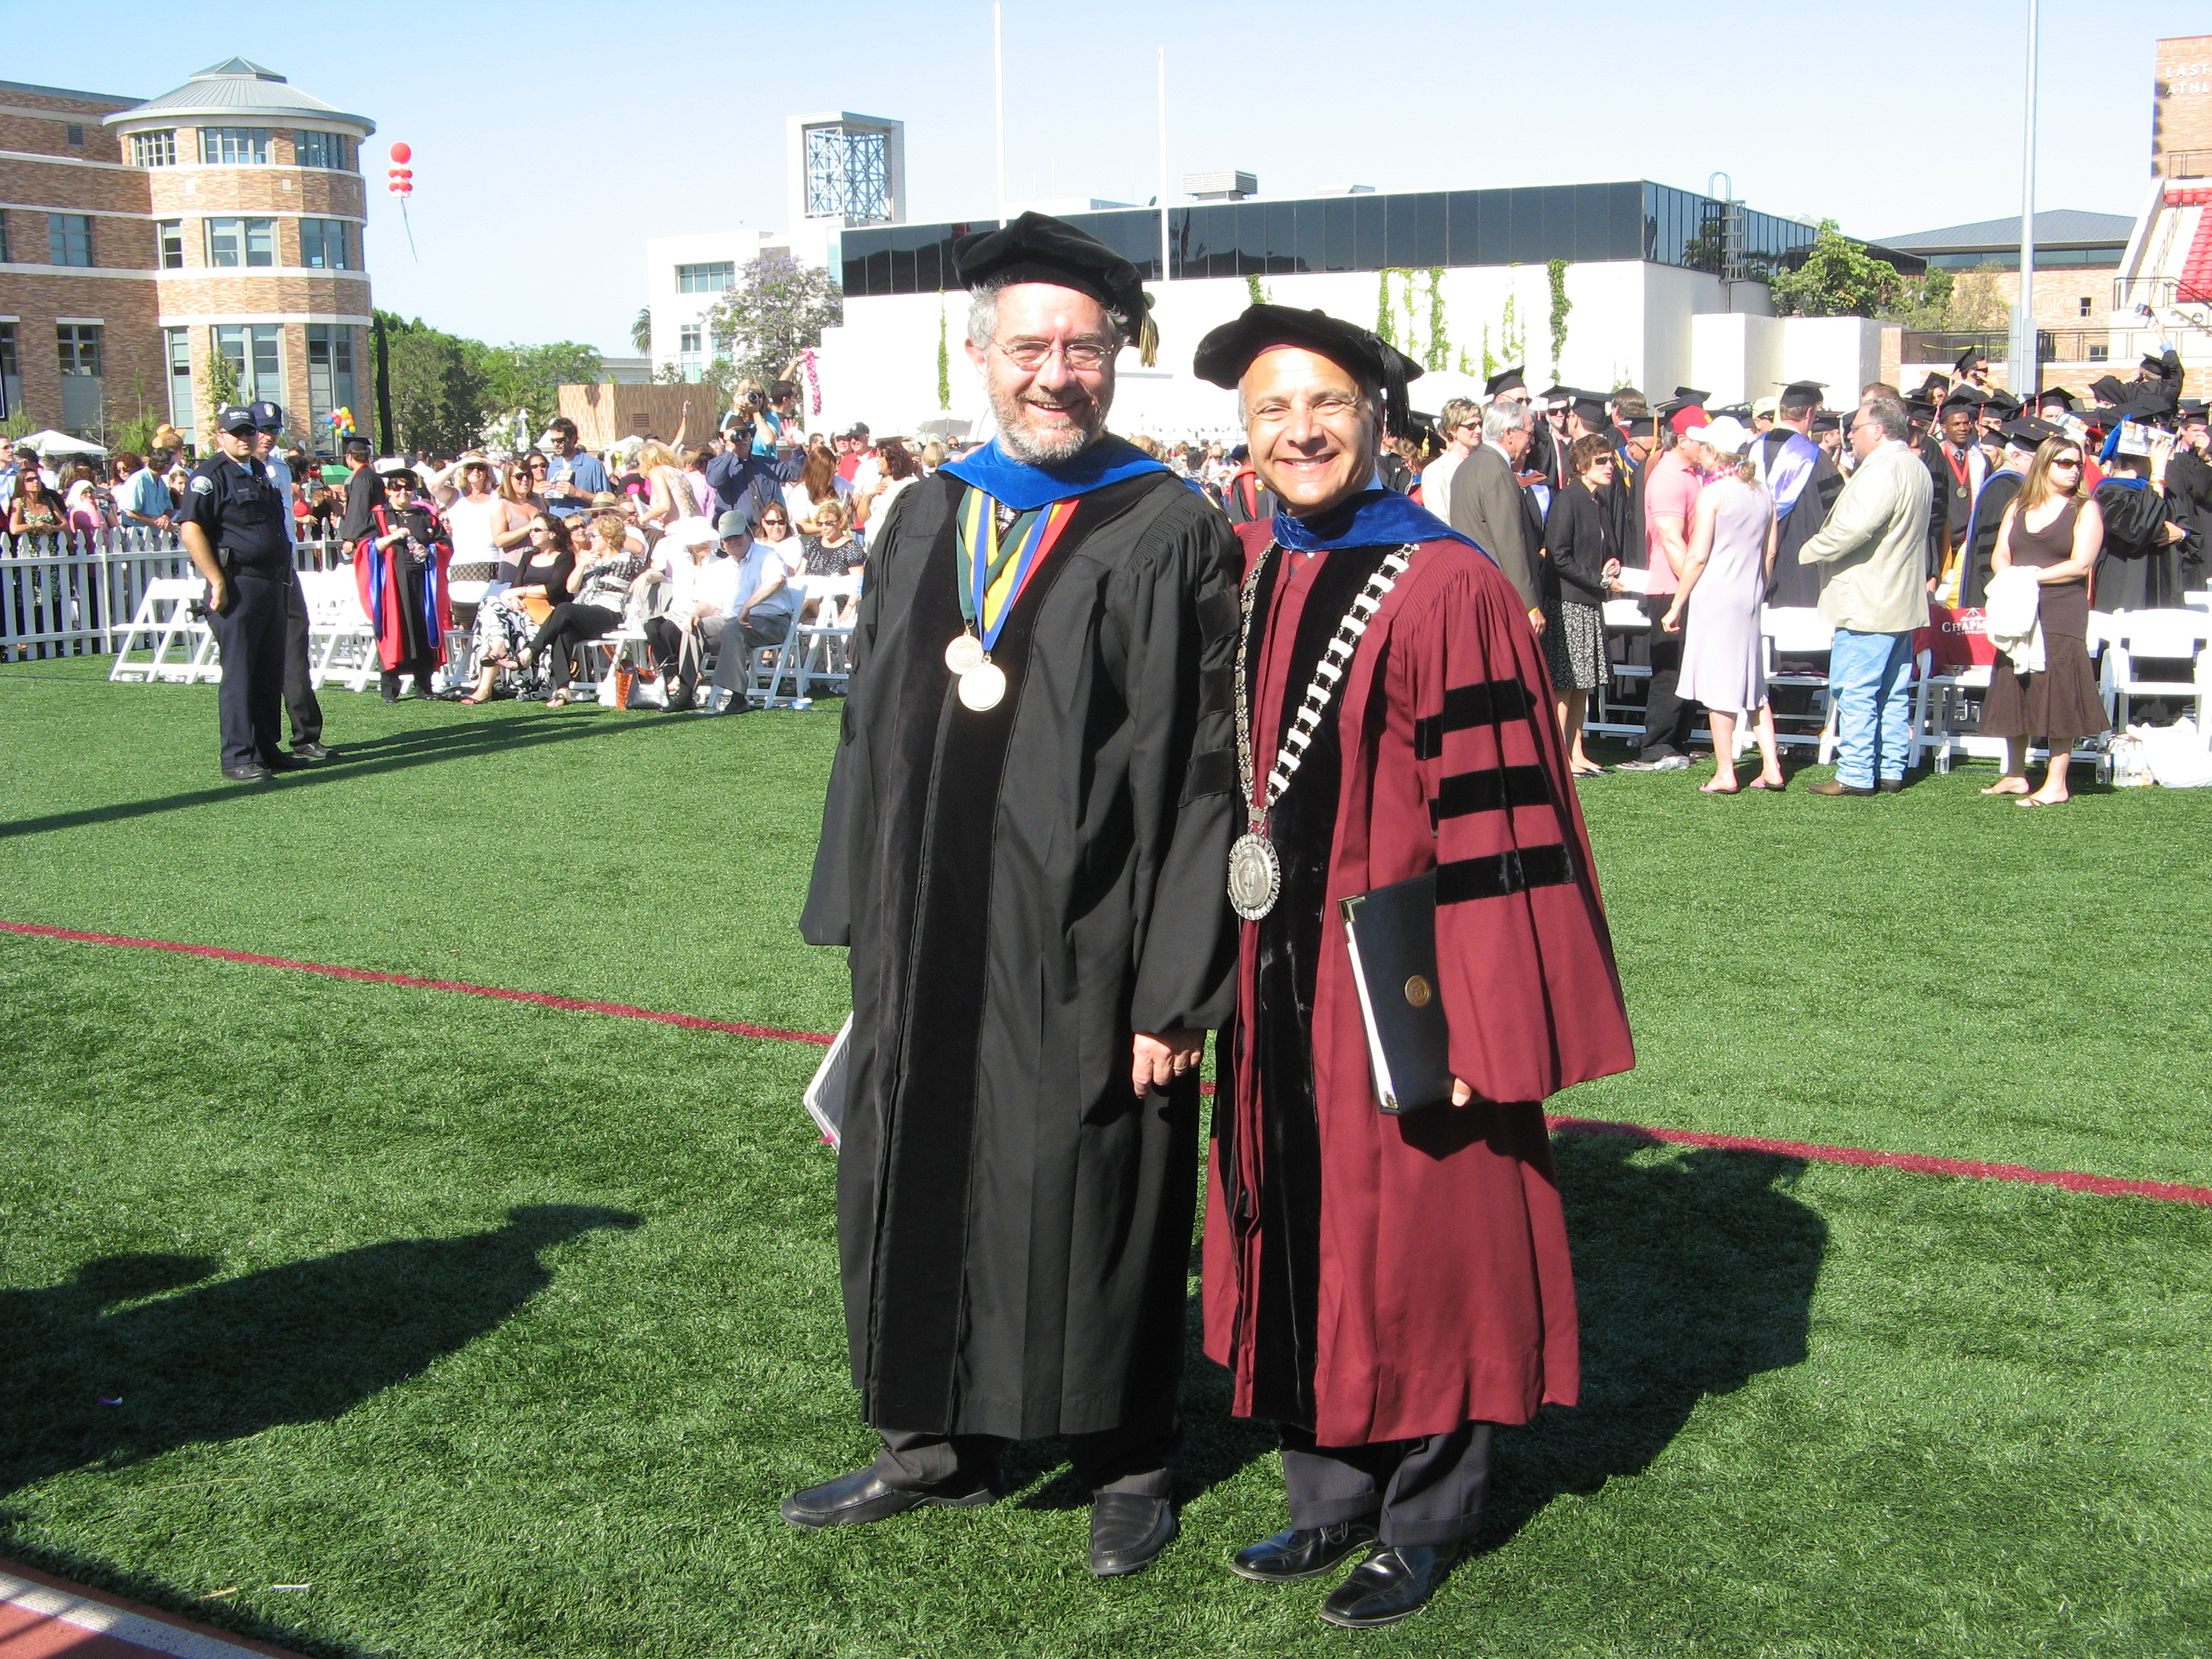 two men smiling in graduation gowns